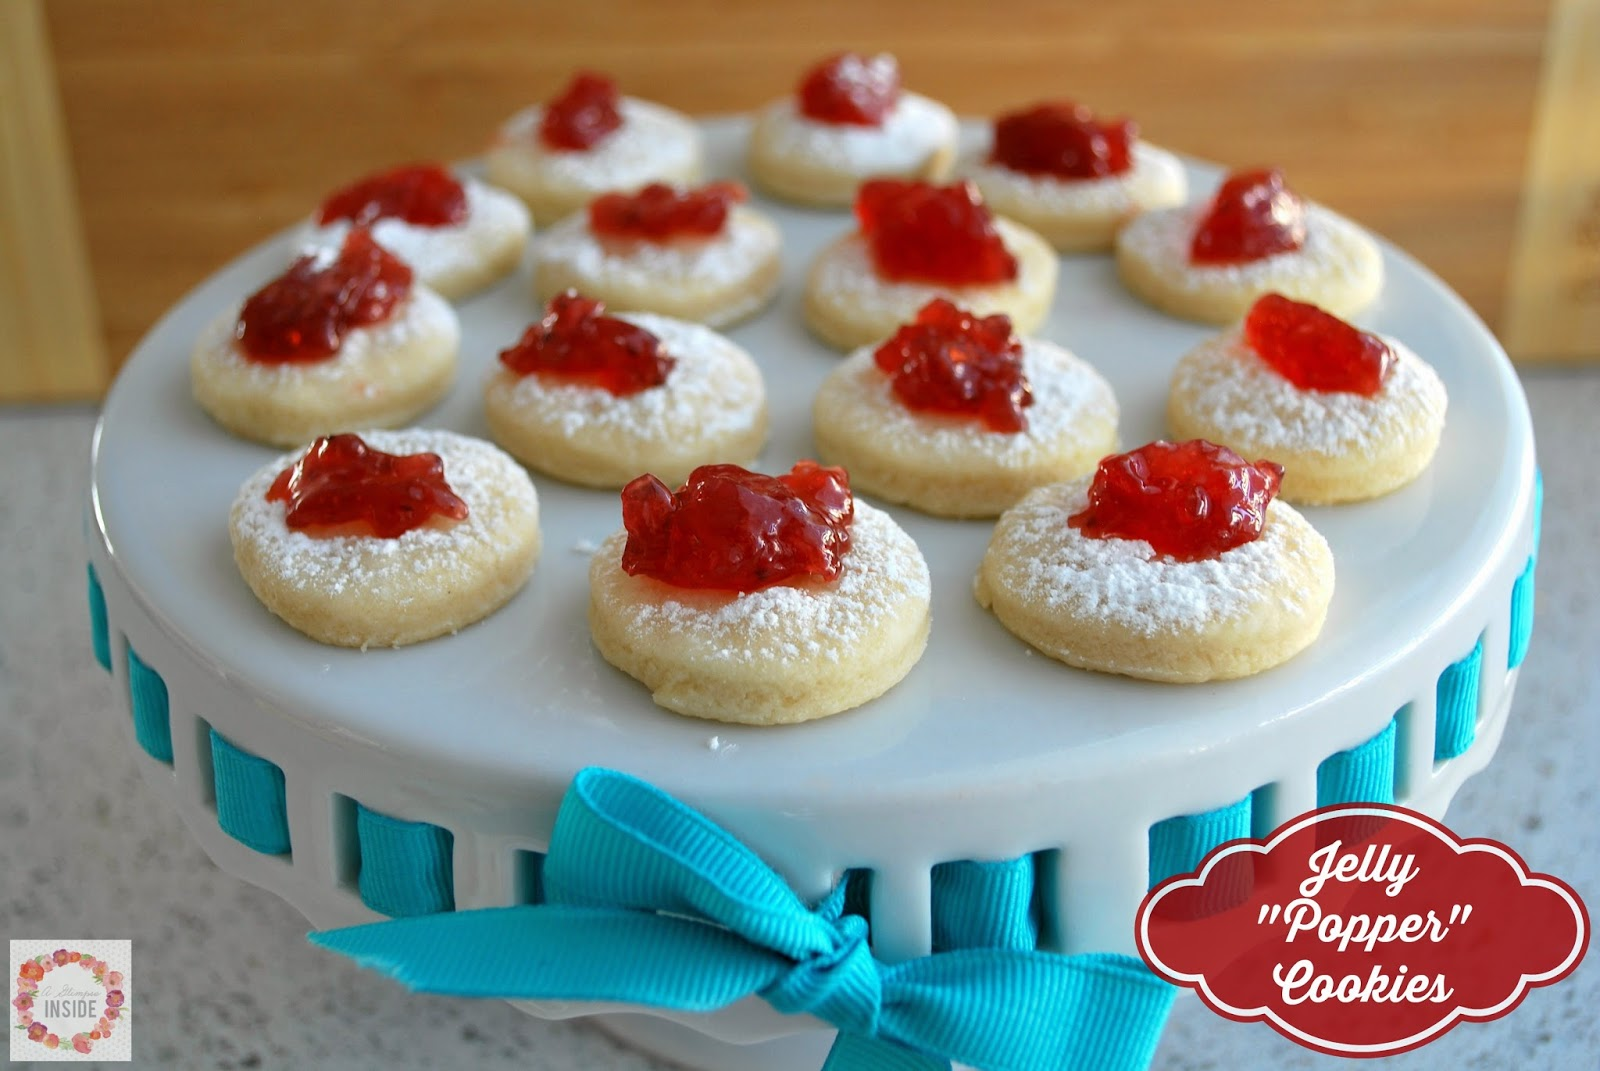 http://www.aglimpseinsideblog.com/2014/12/jelly-popper-cookies.html